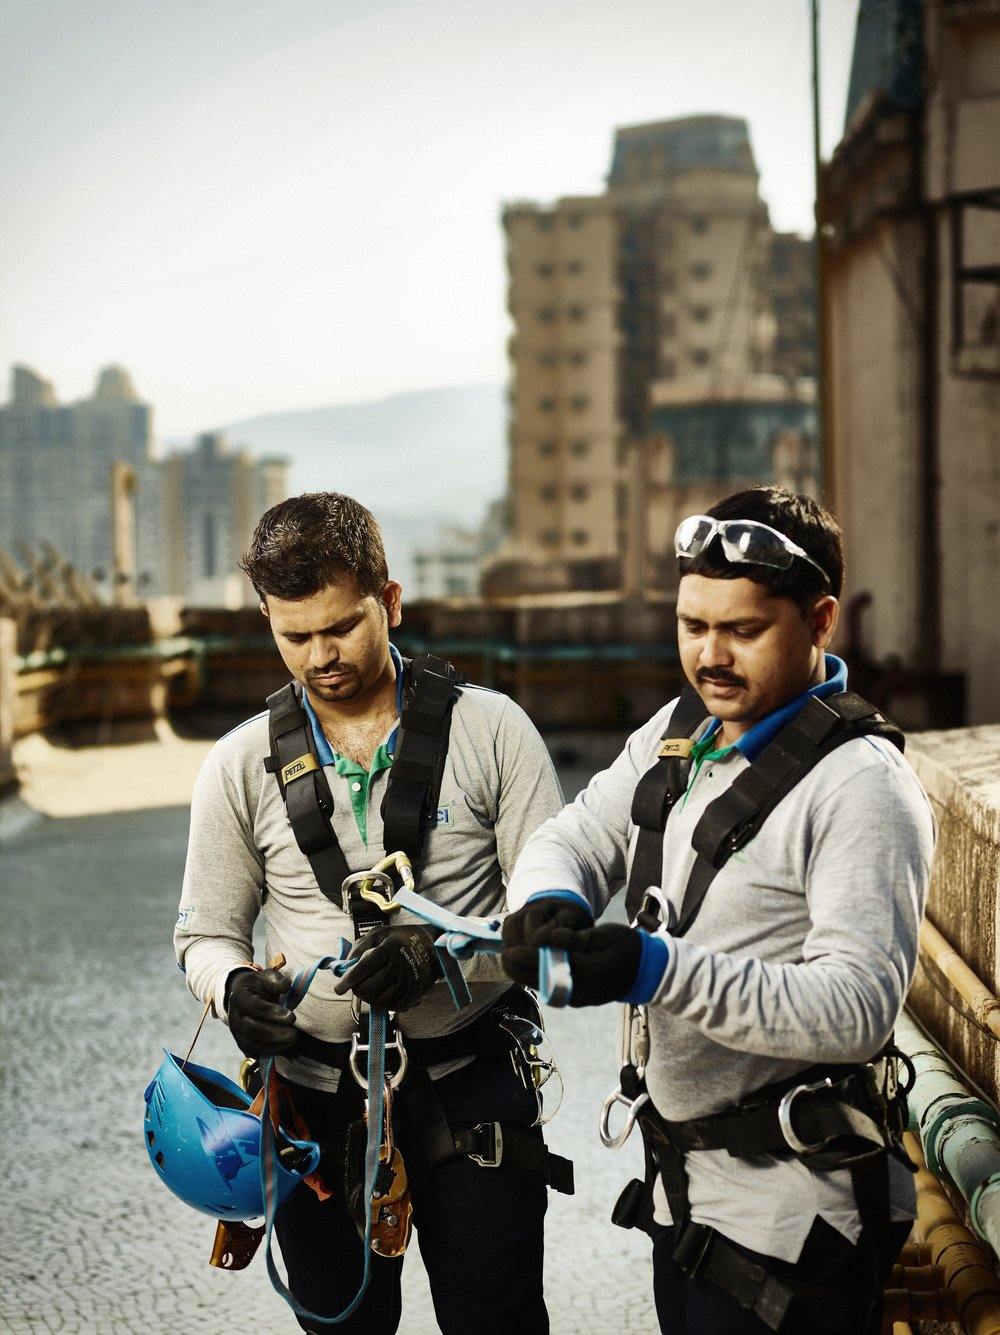 Rentokil India Annual Report Photo Shoot by Matthew Lloyd